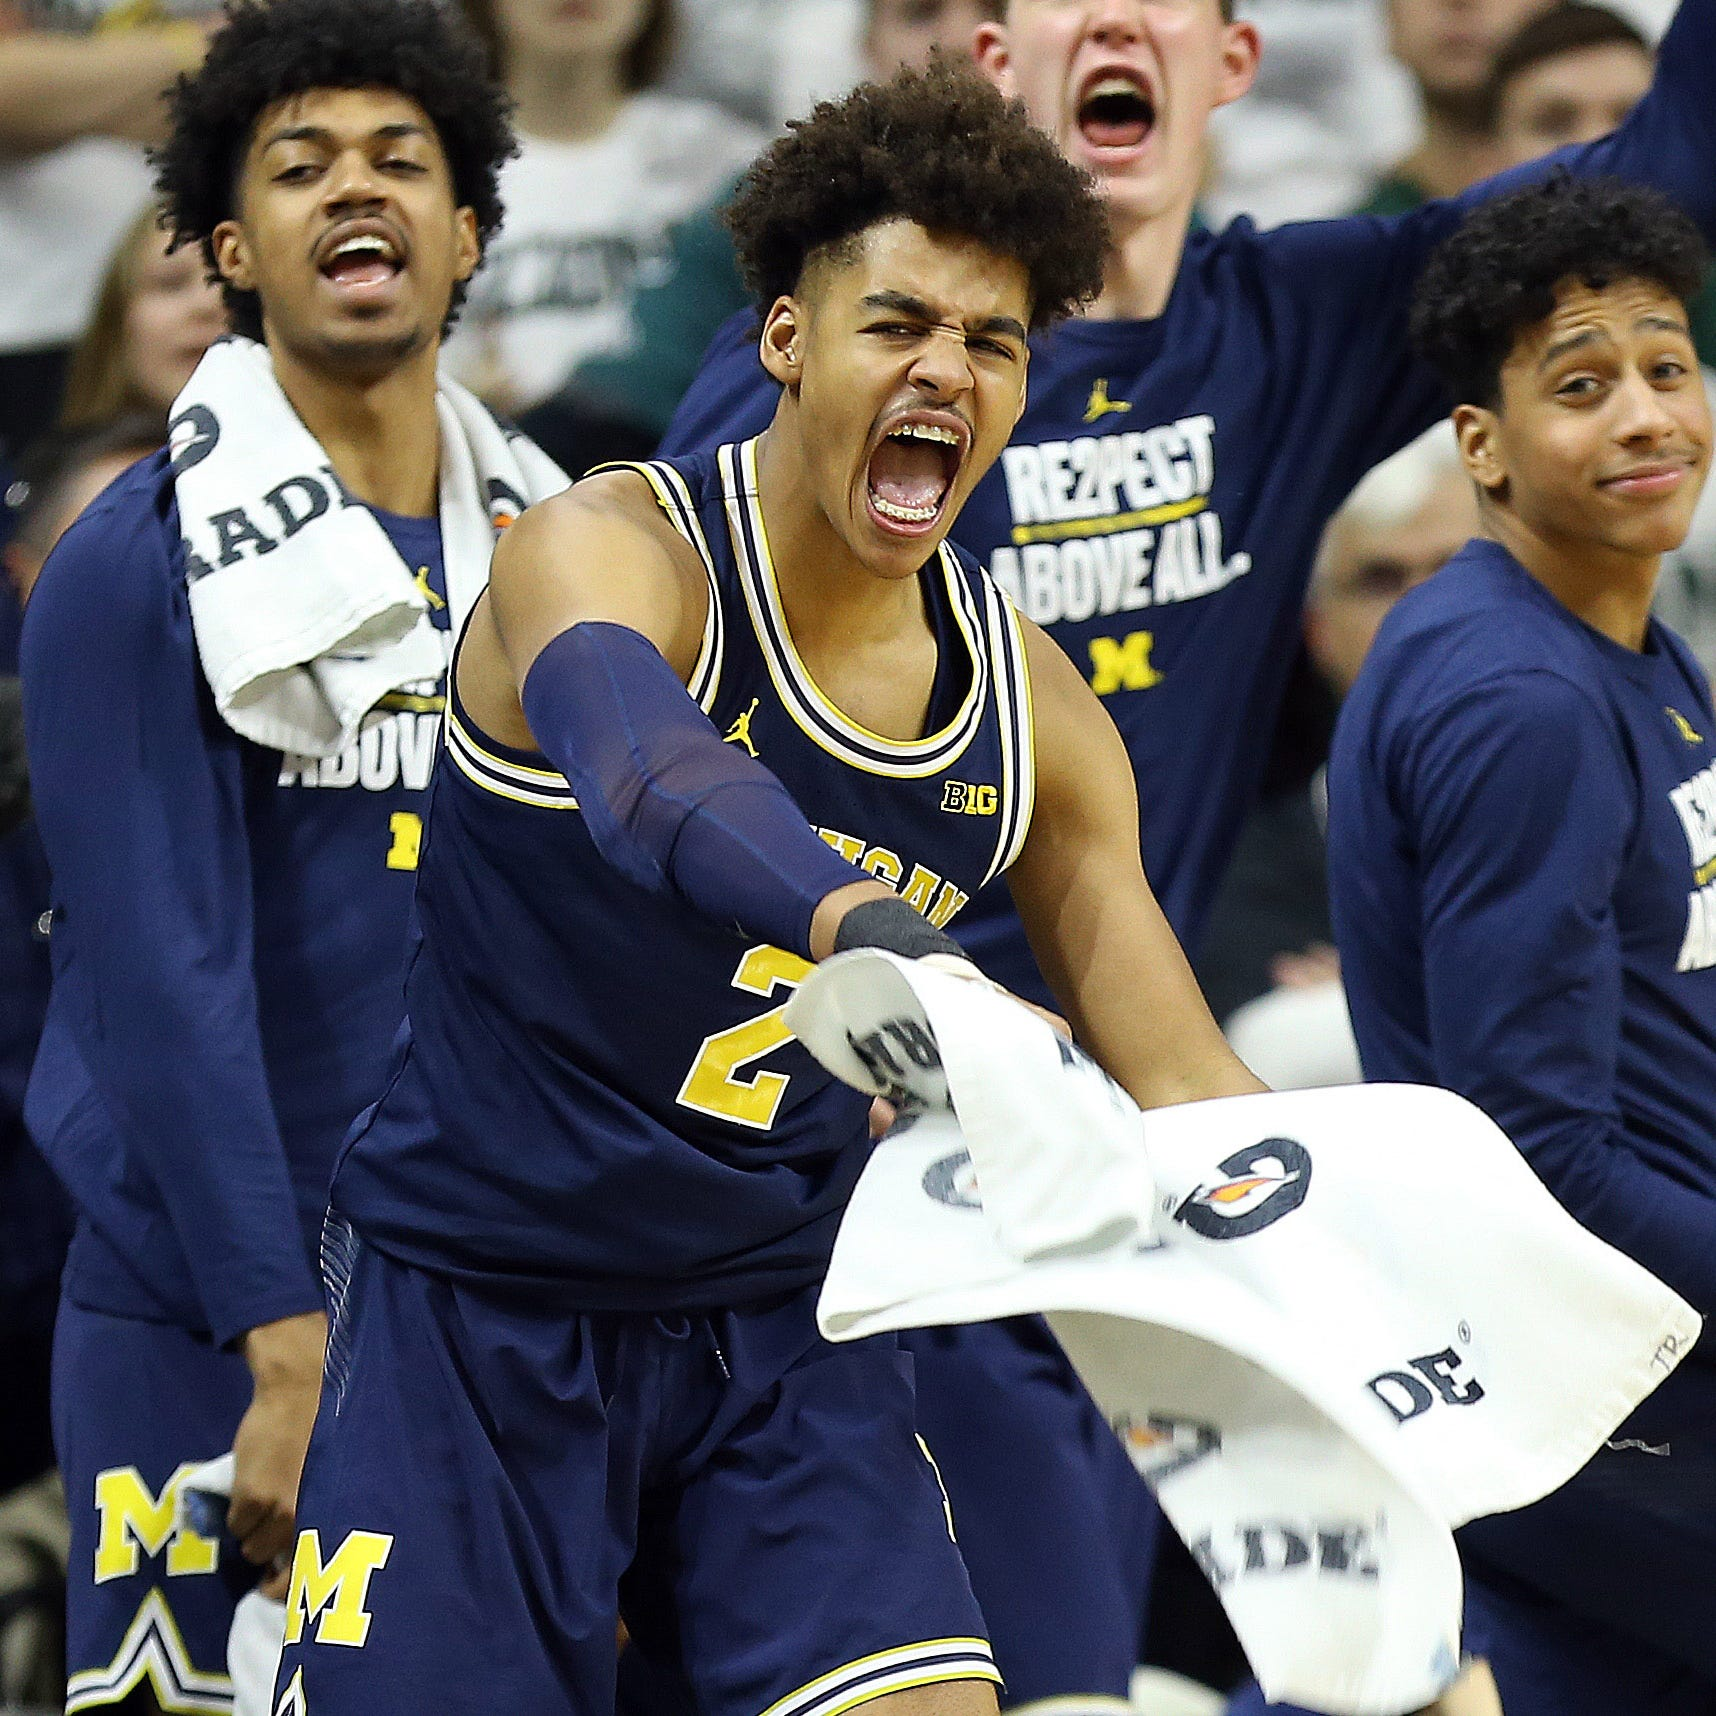 Michigan basketball's Jordan Poole rips Michigan State campus: 'It's trash'